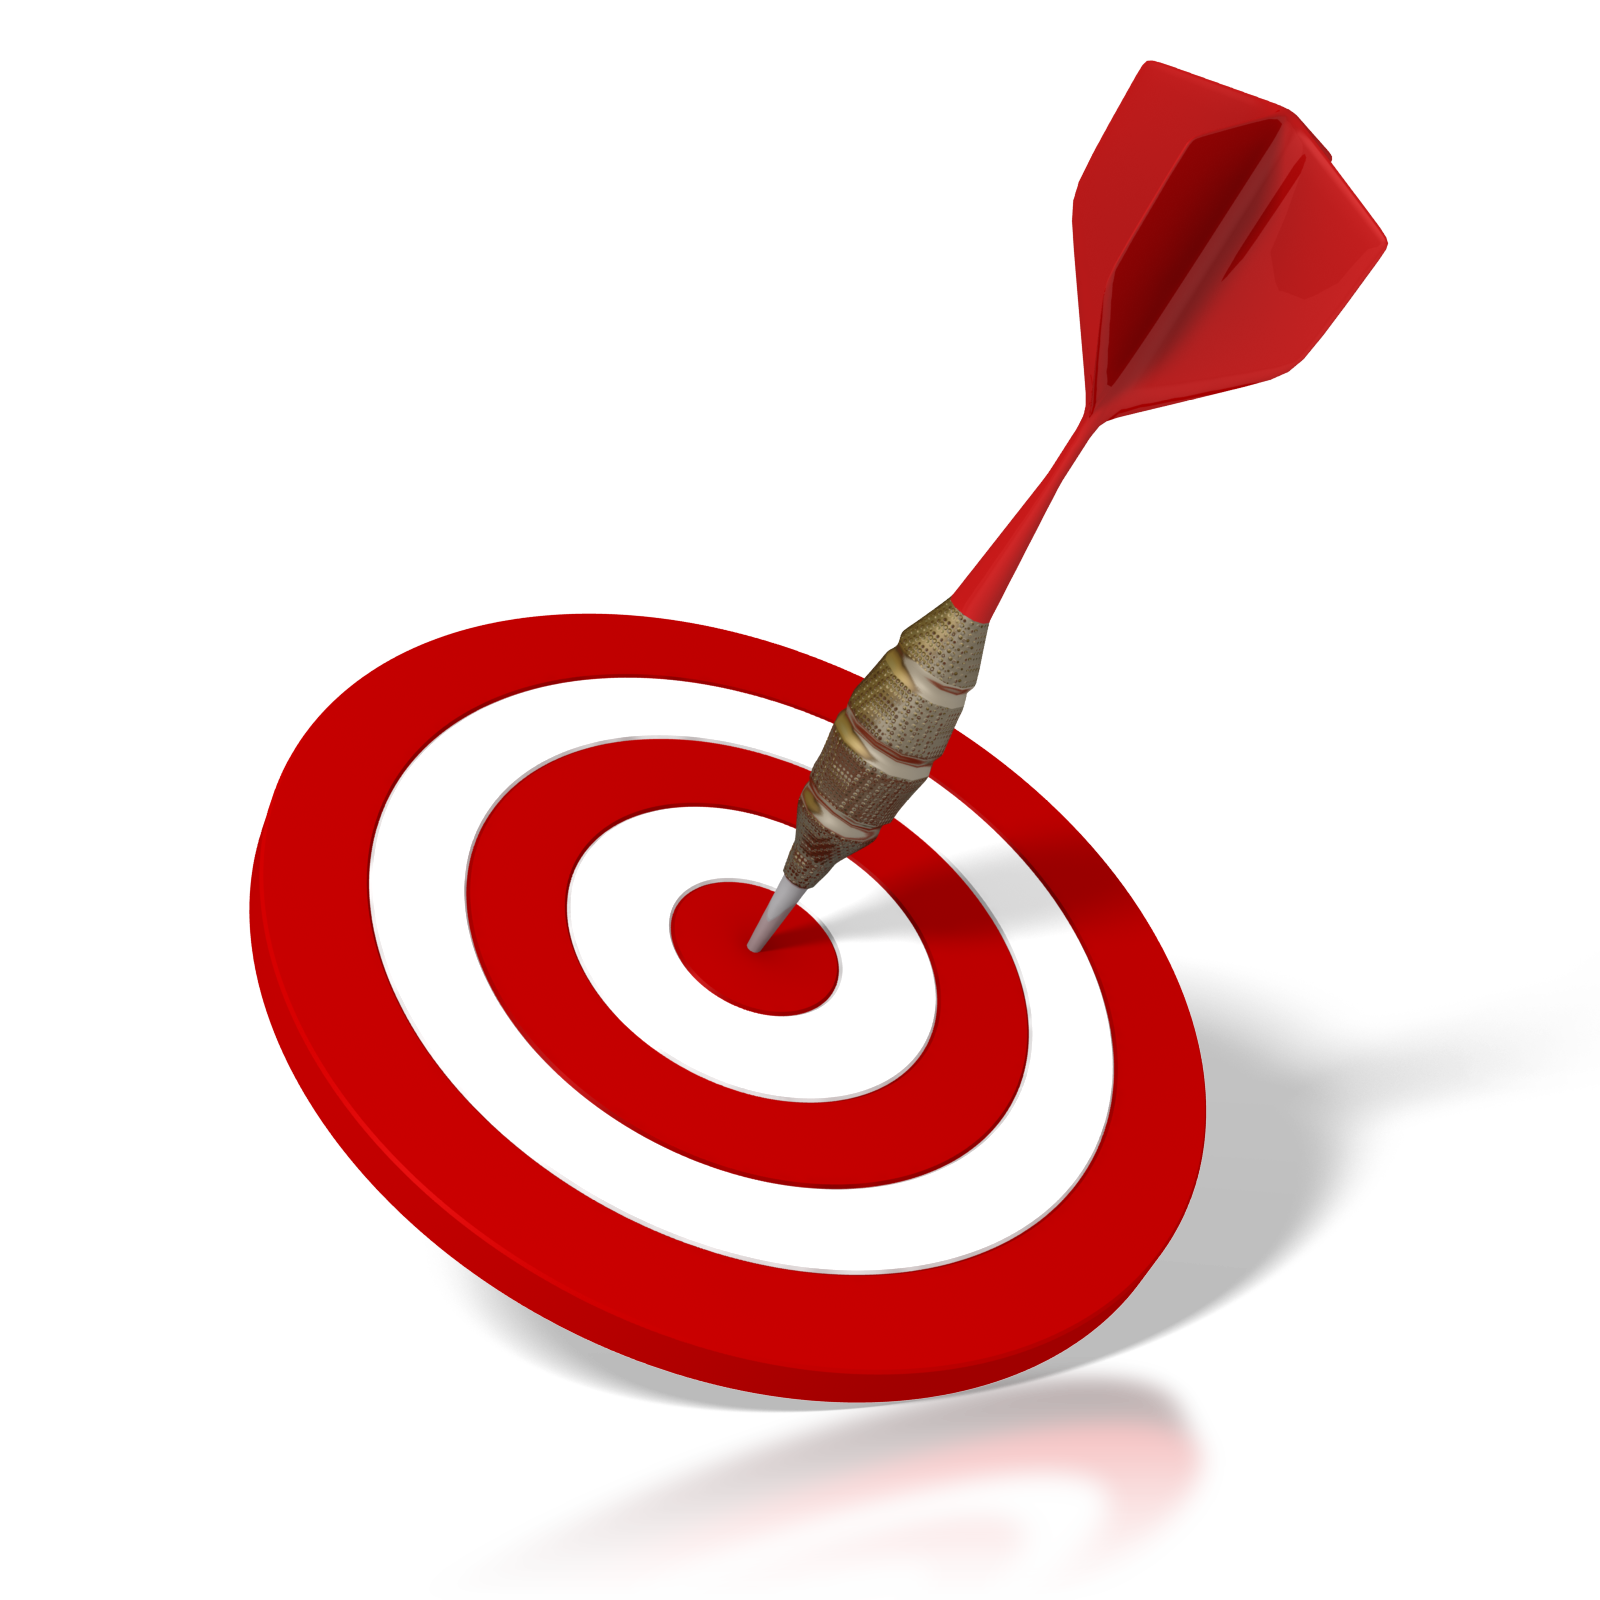 Png images free download. Dart clipart achieved target jpg black and white stock